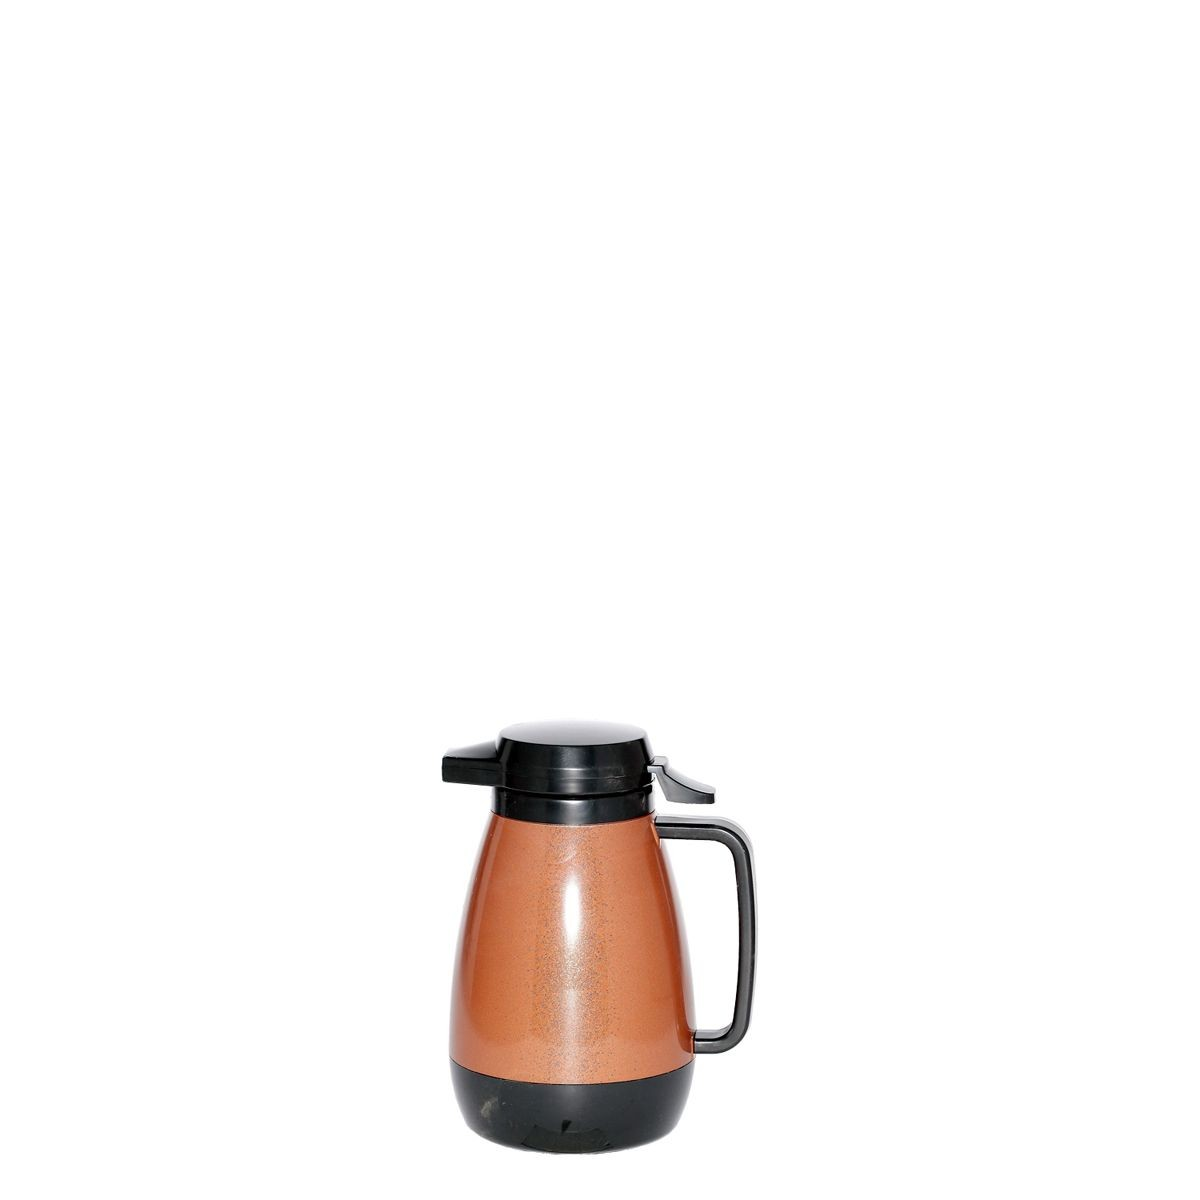 Service Ideas PB501CB Thermo-Serv Copper and Black Push Button Coffee Server, .6 Liter (20 oz.)